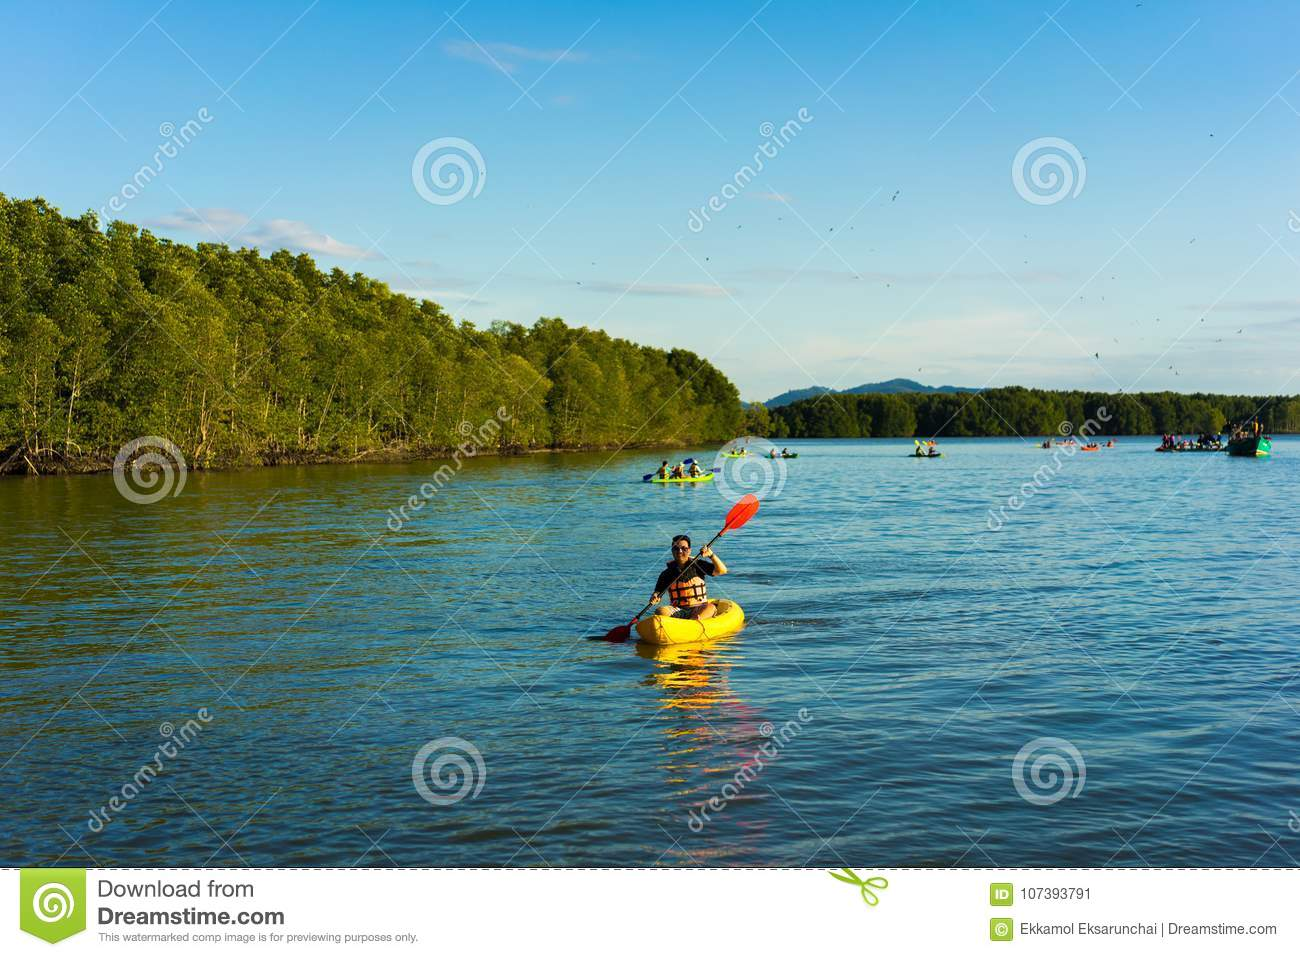 A man are rowing kayak